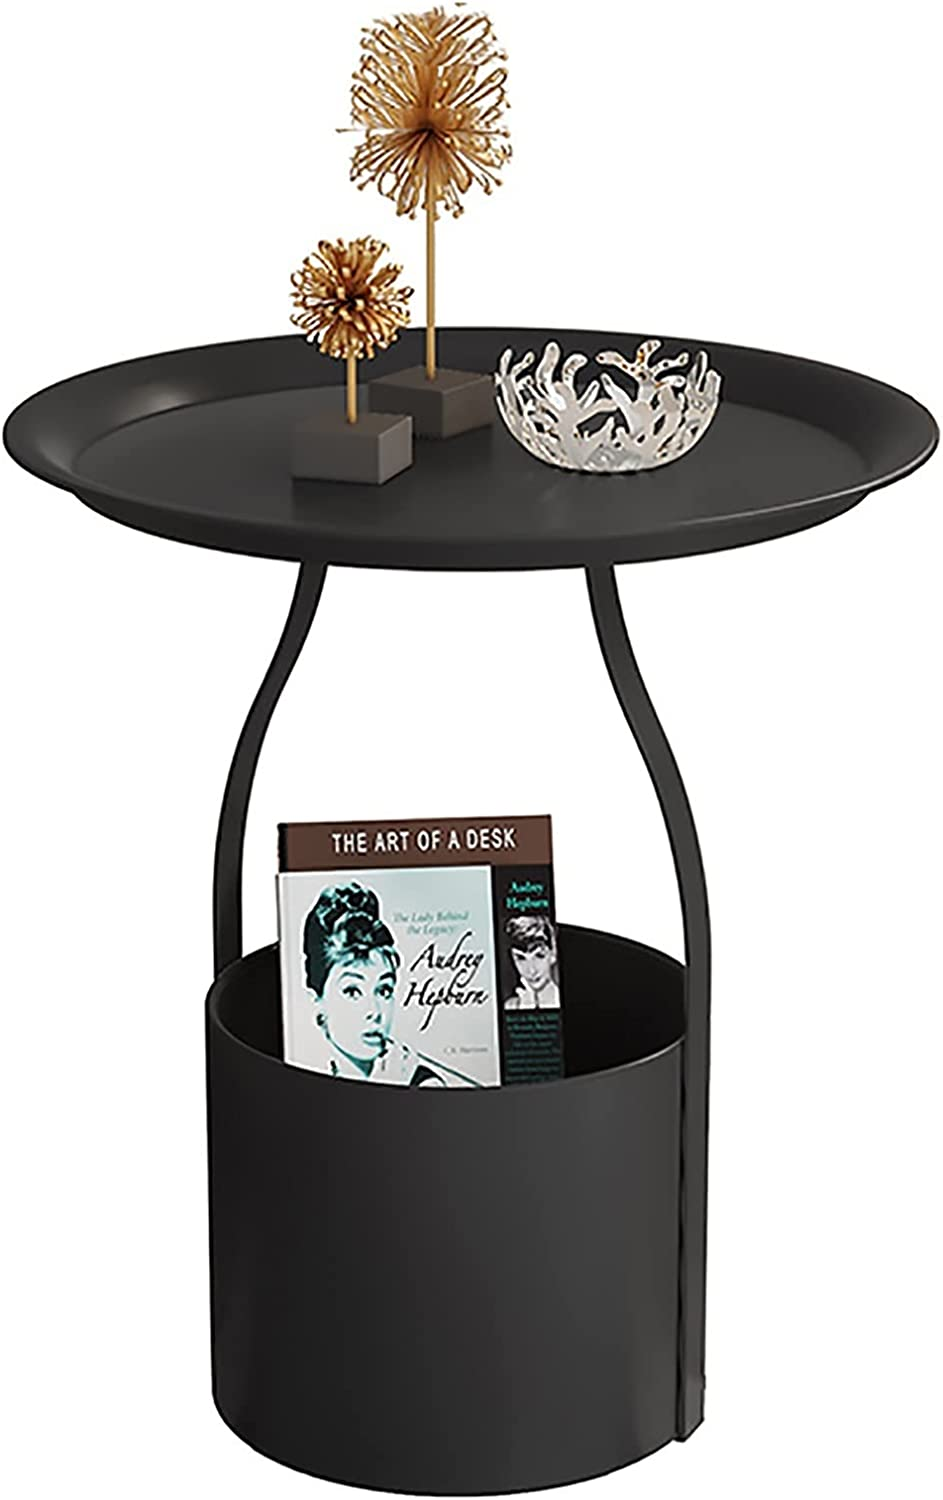 ZJMK Nightstands Side End Table with Long-awaited Tabl Luxury Metal Round Tray Sofa